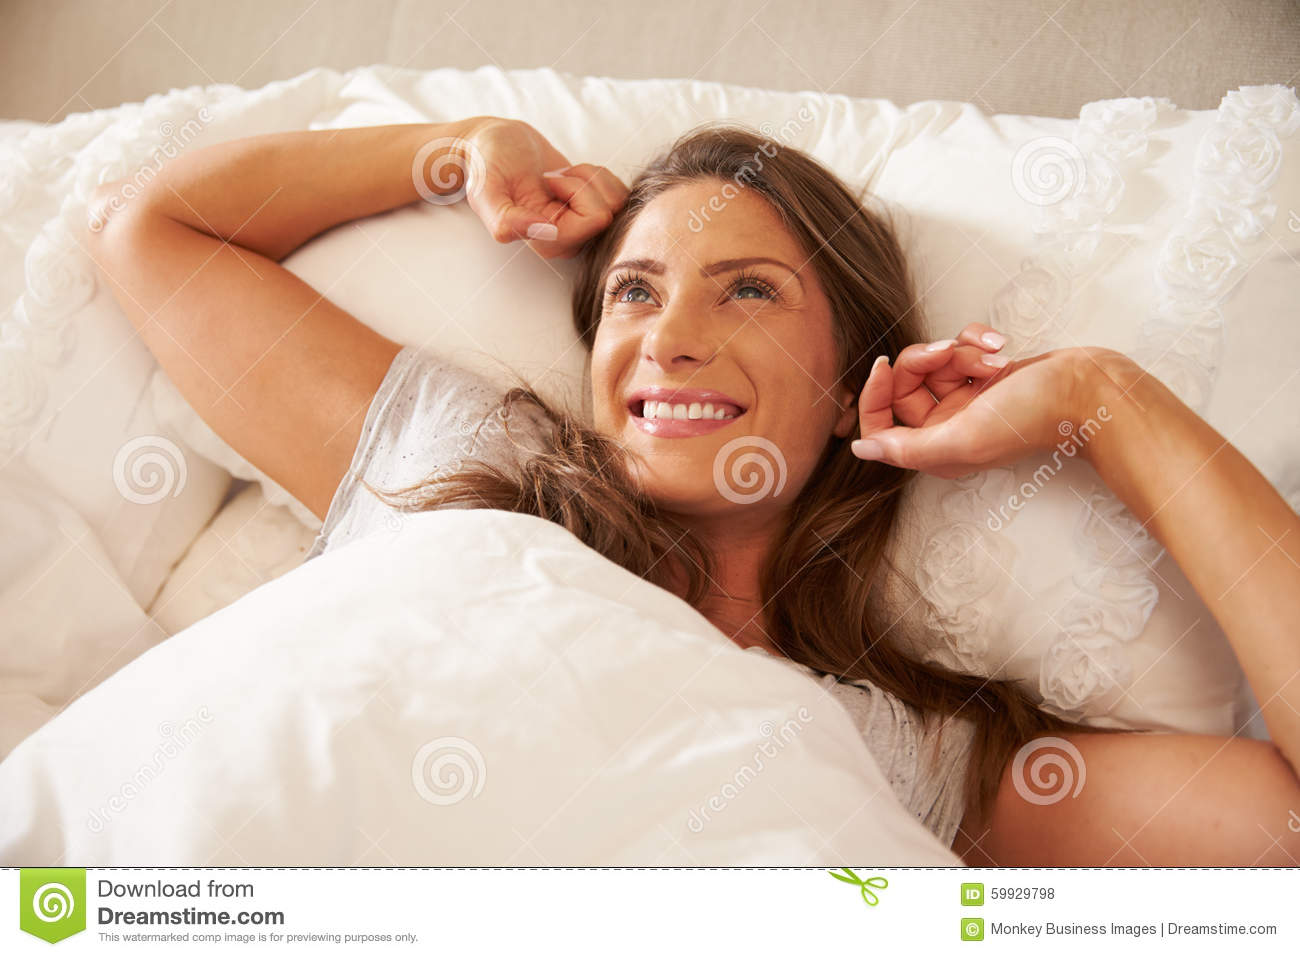 Woman Waking Up And Stretching In Bed At Home